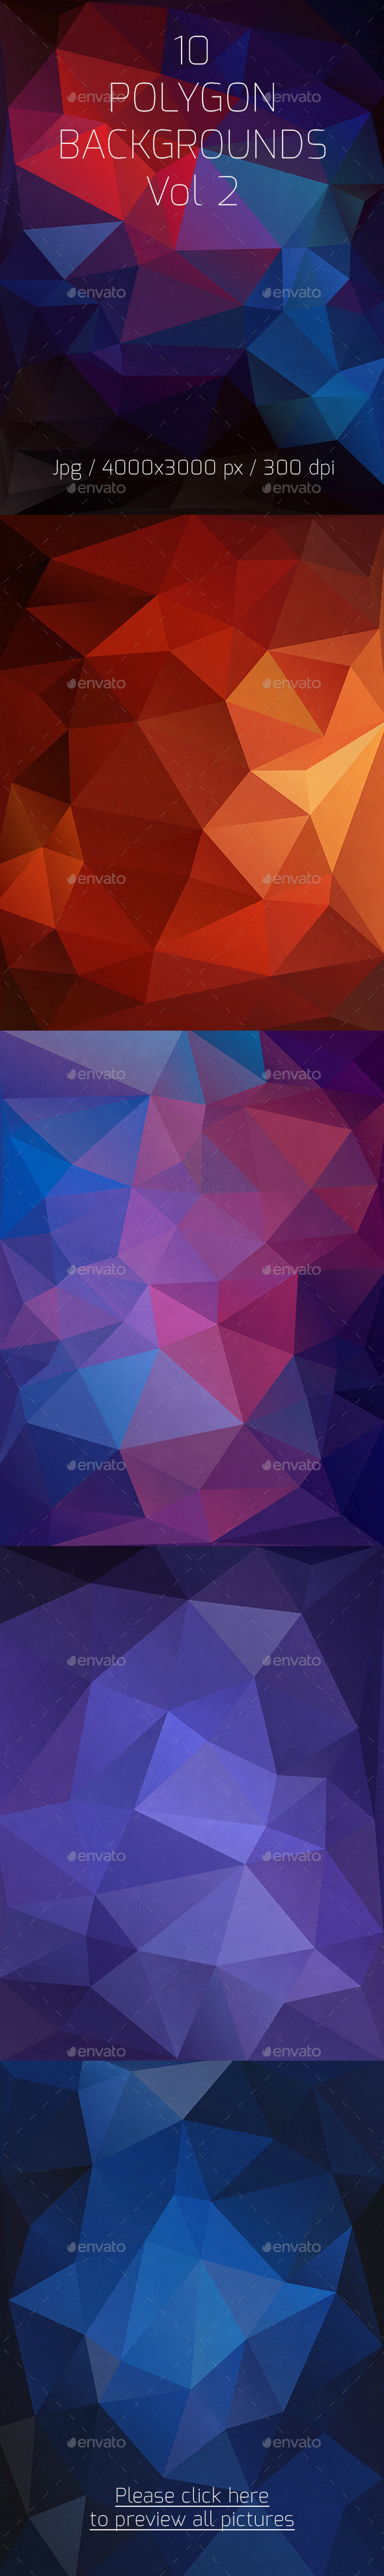 10 Polygon Backgrounds Vol 2 - Abstract Backgrounds